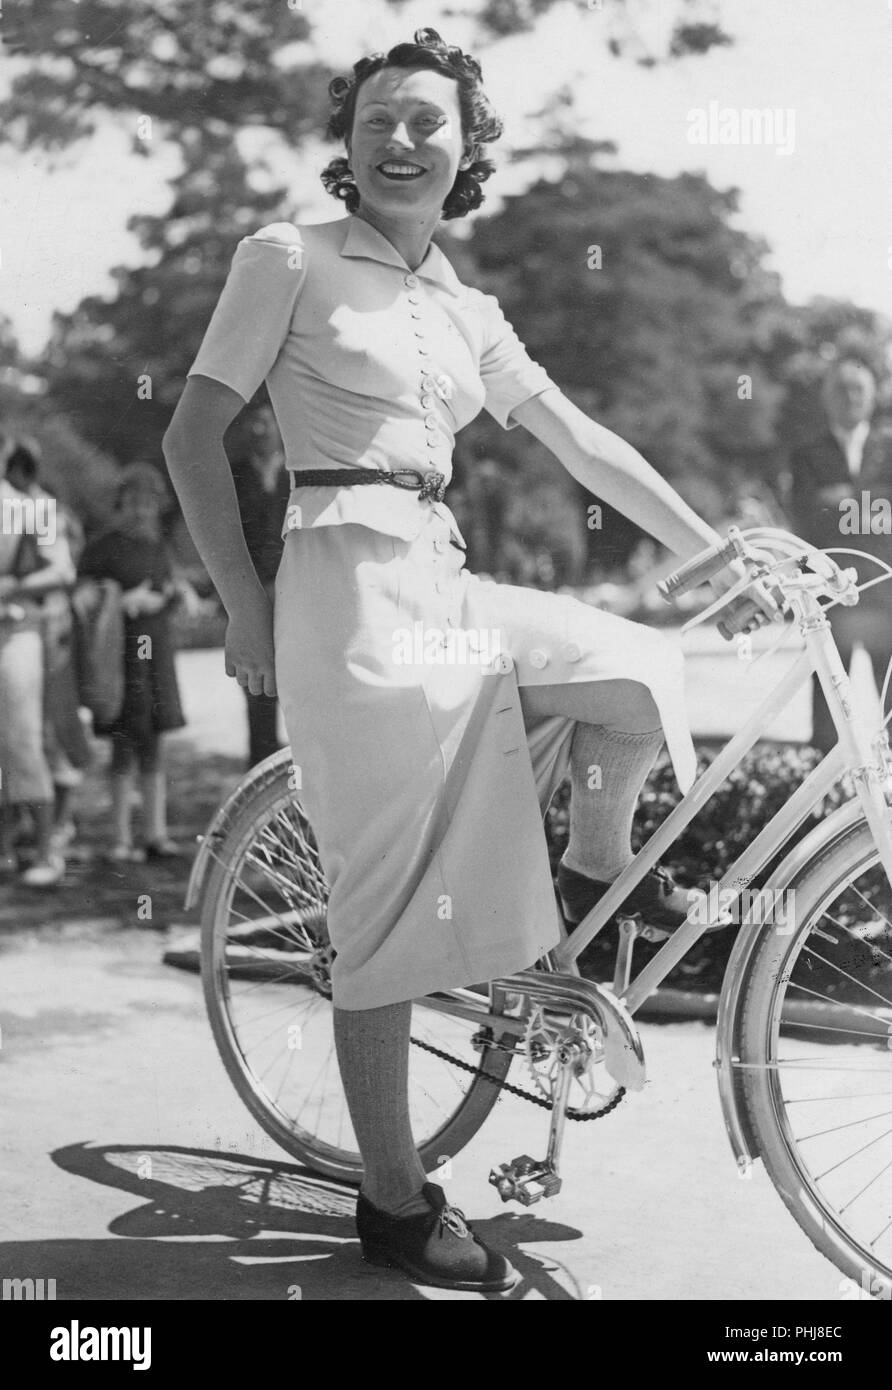 1930s woman on a bicycle. A smiling young woman on a womens bicycle on a sunny day. Sweden 1930s - Stock Image